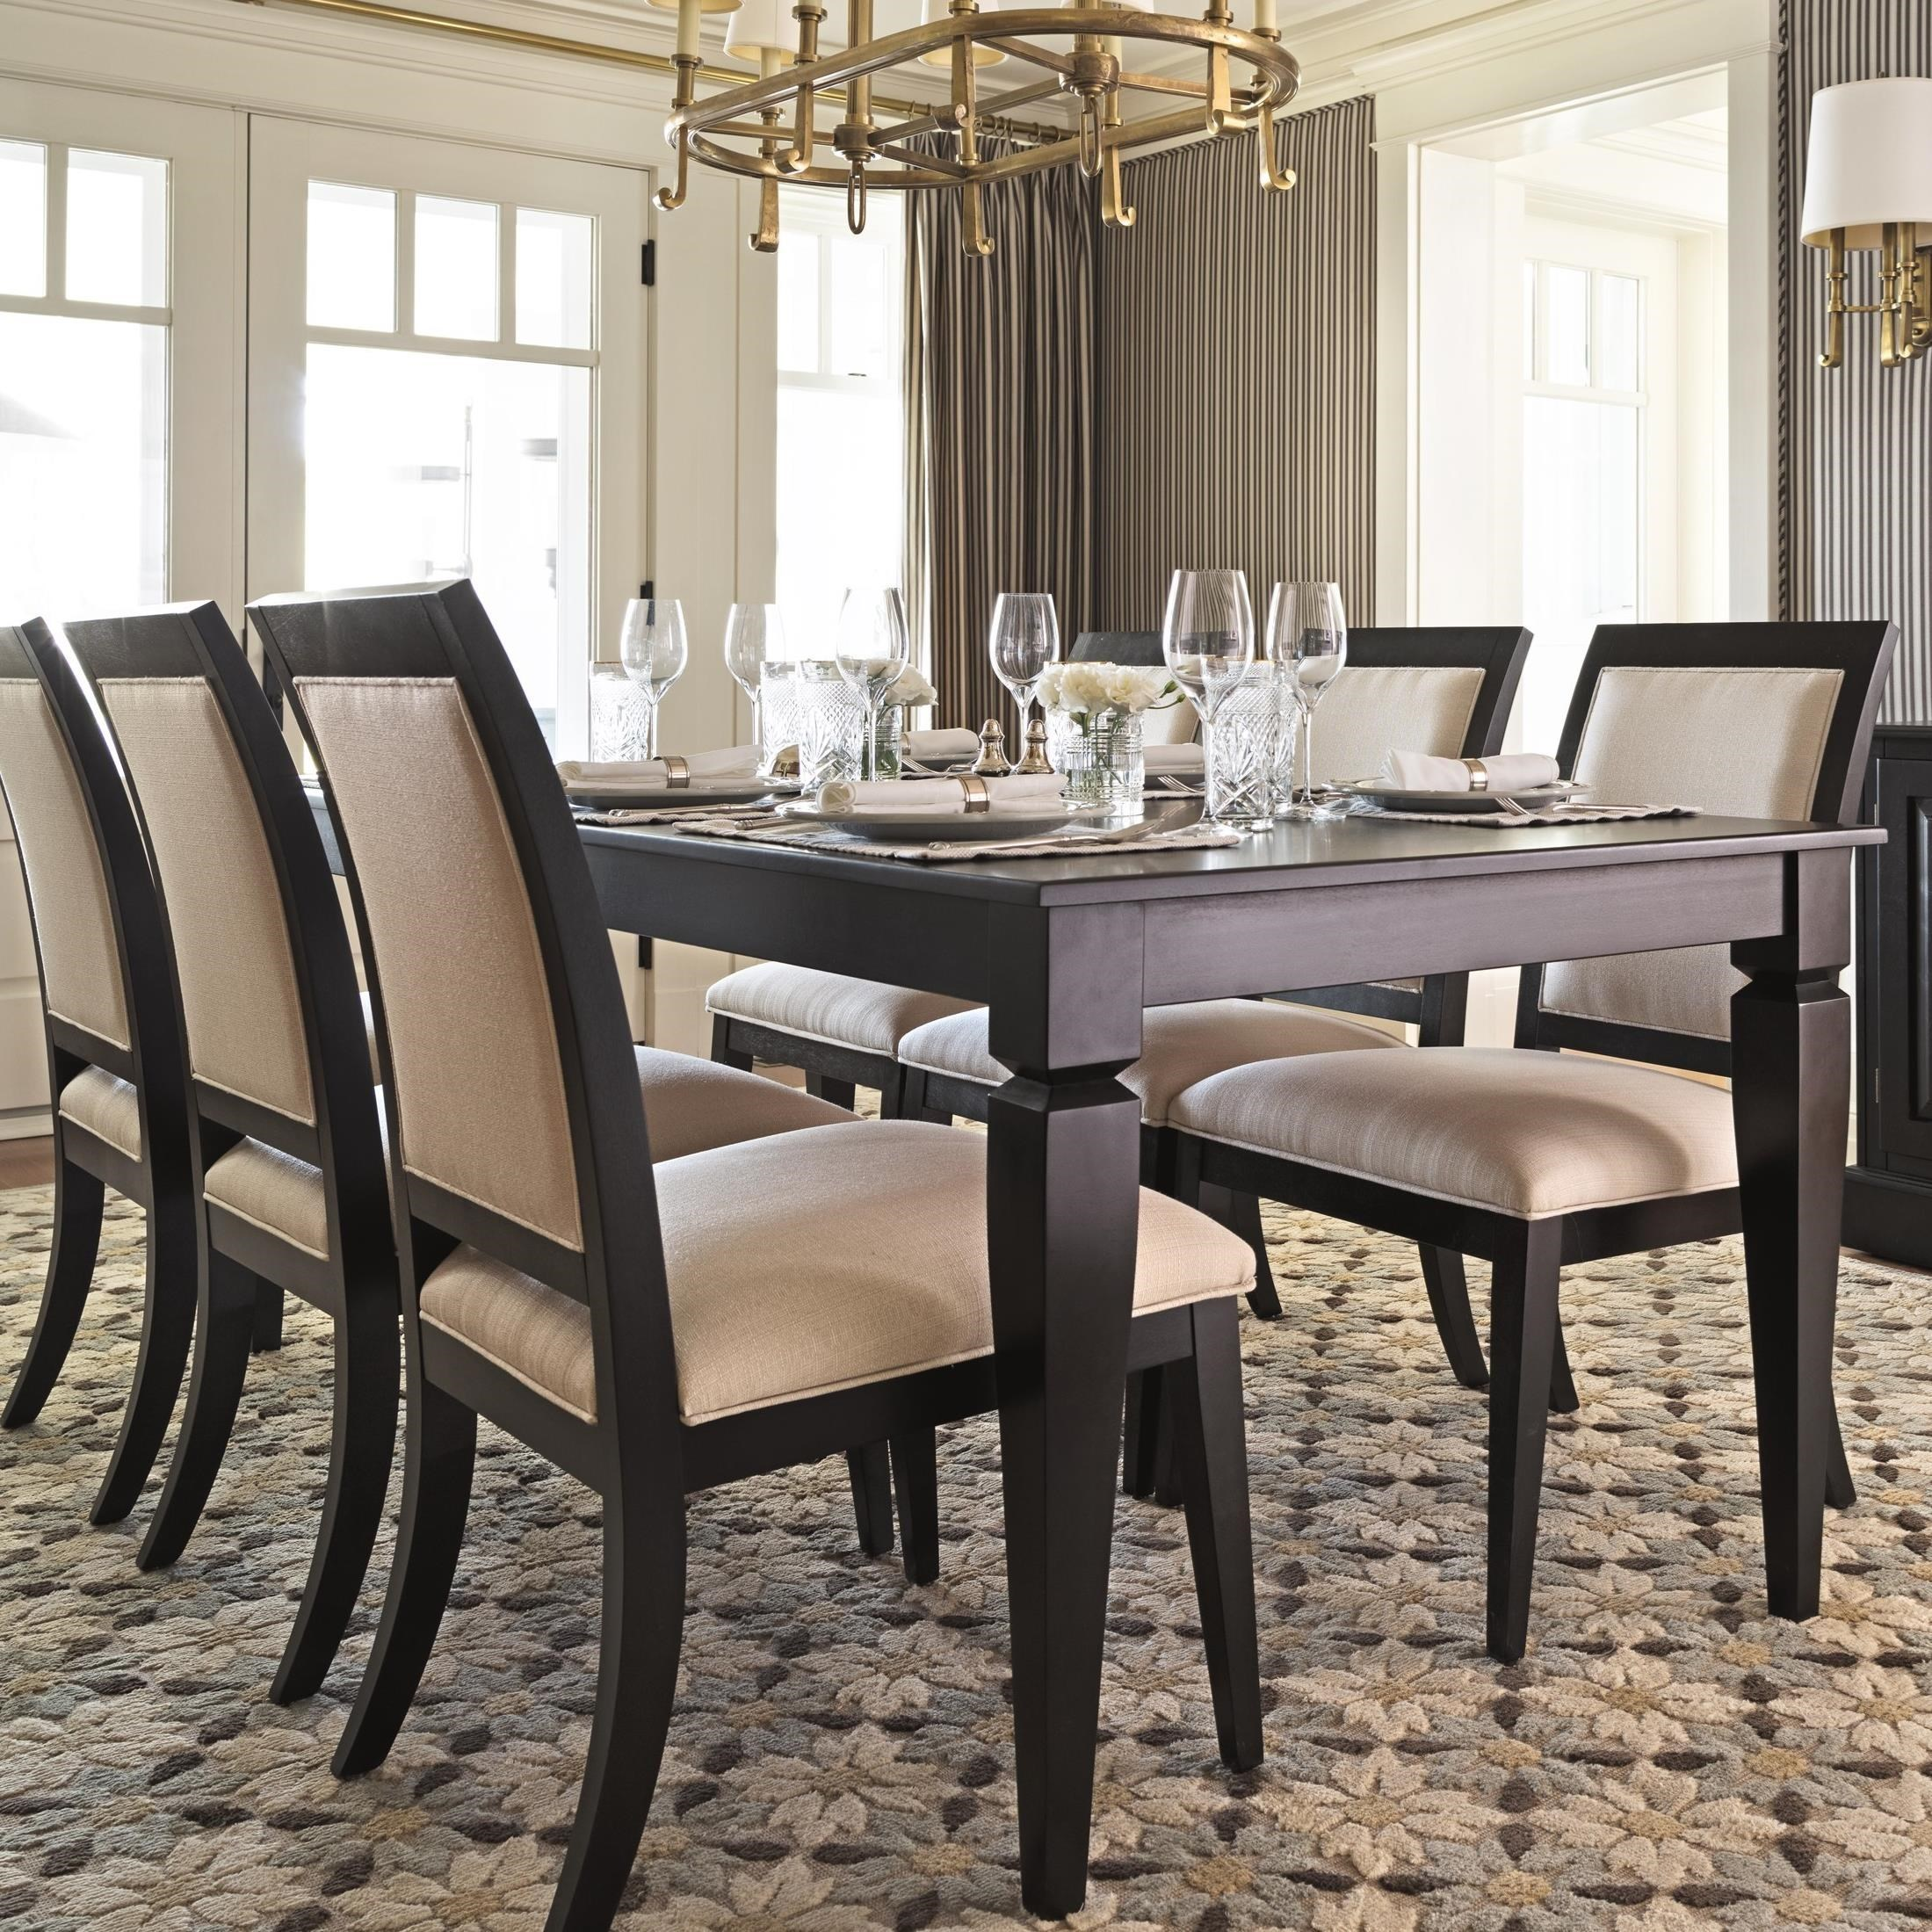 Delightful Canadel Custom DiningCustomizable Rectangular Dining Table Set ...